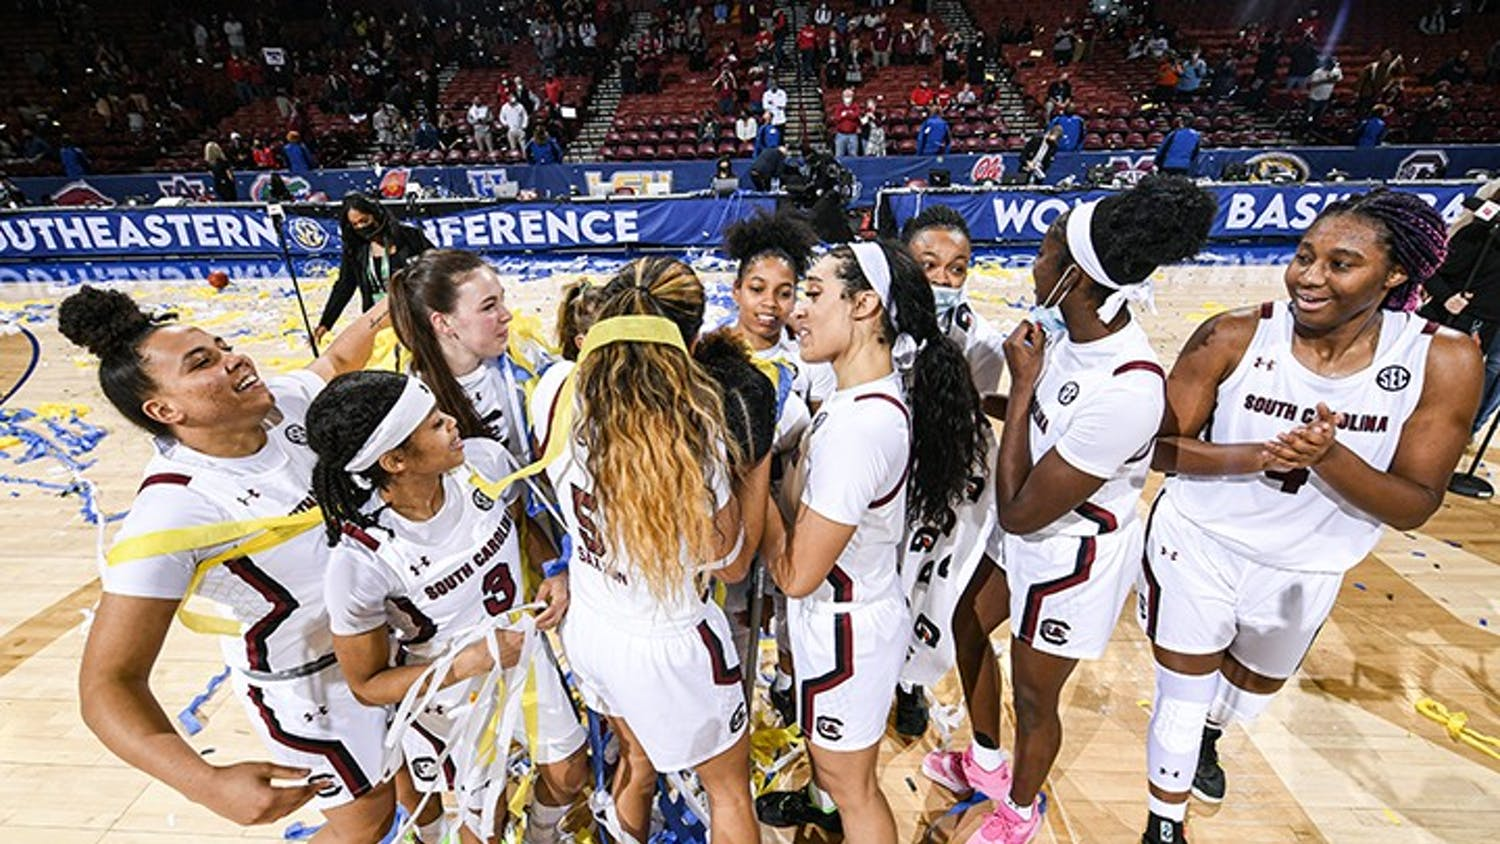 Members of the South Carolina women's basketball team celebrate after defeating Georgia 67-62 in the SEC Championship.